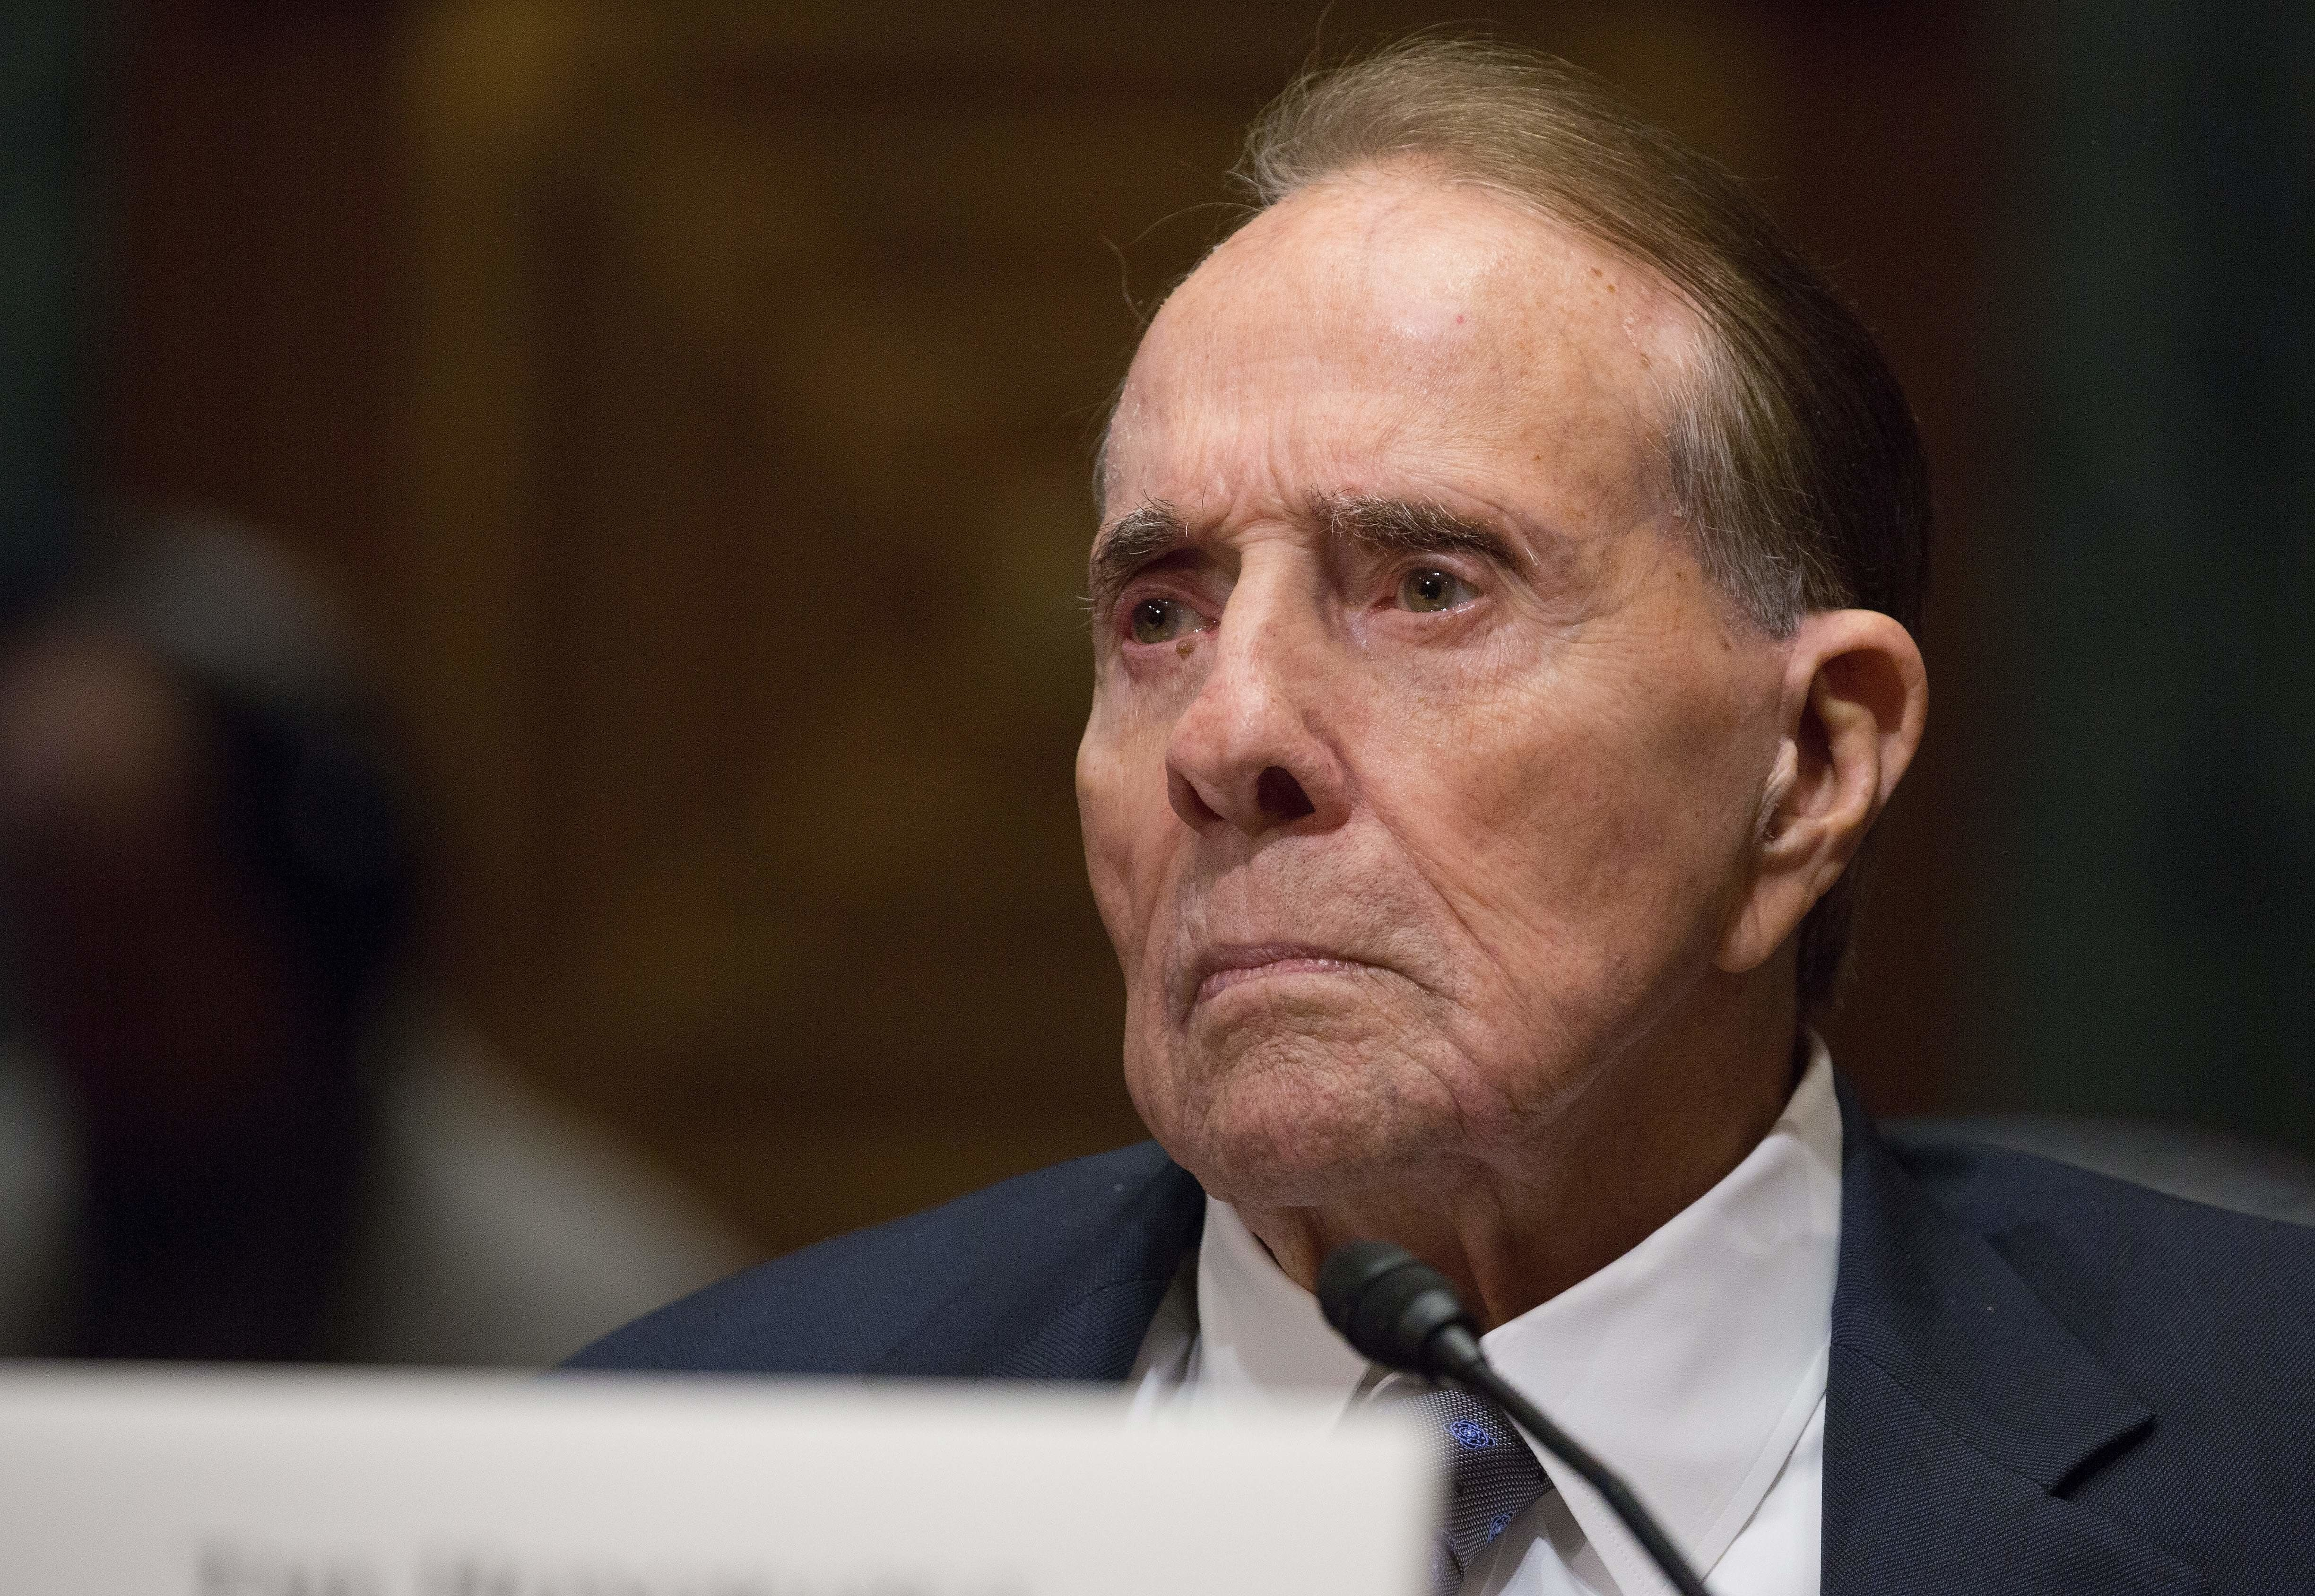 Former Senator Bob Dole attends the Senate Finance Committee full hearing on the nomination of the U.S Trade Representative Robert Lighthizer in Washington, DC March 14, 2017. / AFP PHOTO / Tasos KATOPODIS        (Photo credit should read TASOS KATOPODIS/AFP/Getty Images)